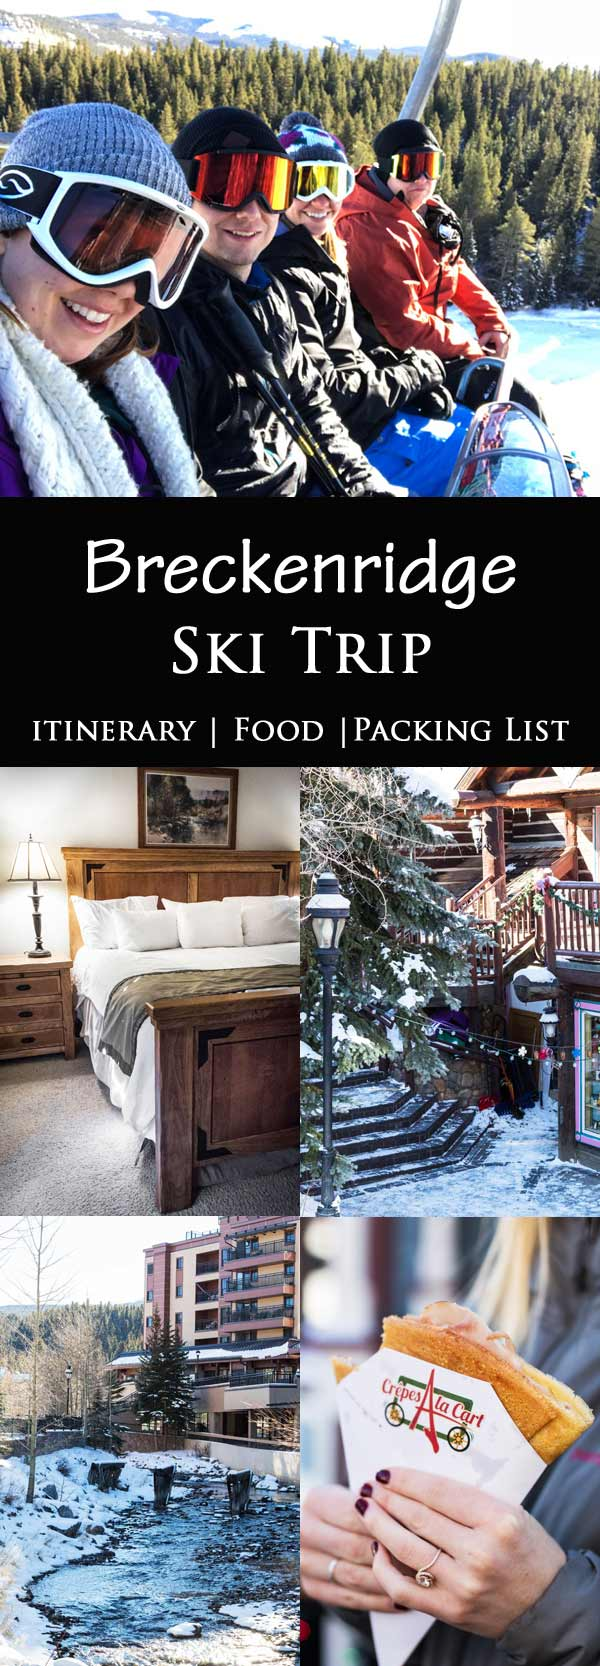 Check out our ski trip reviews of Breckenridge Resort - complete with ski in ski out condo, food recommendations, and packing list! The Village is the perfect Winter vacation!